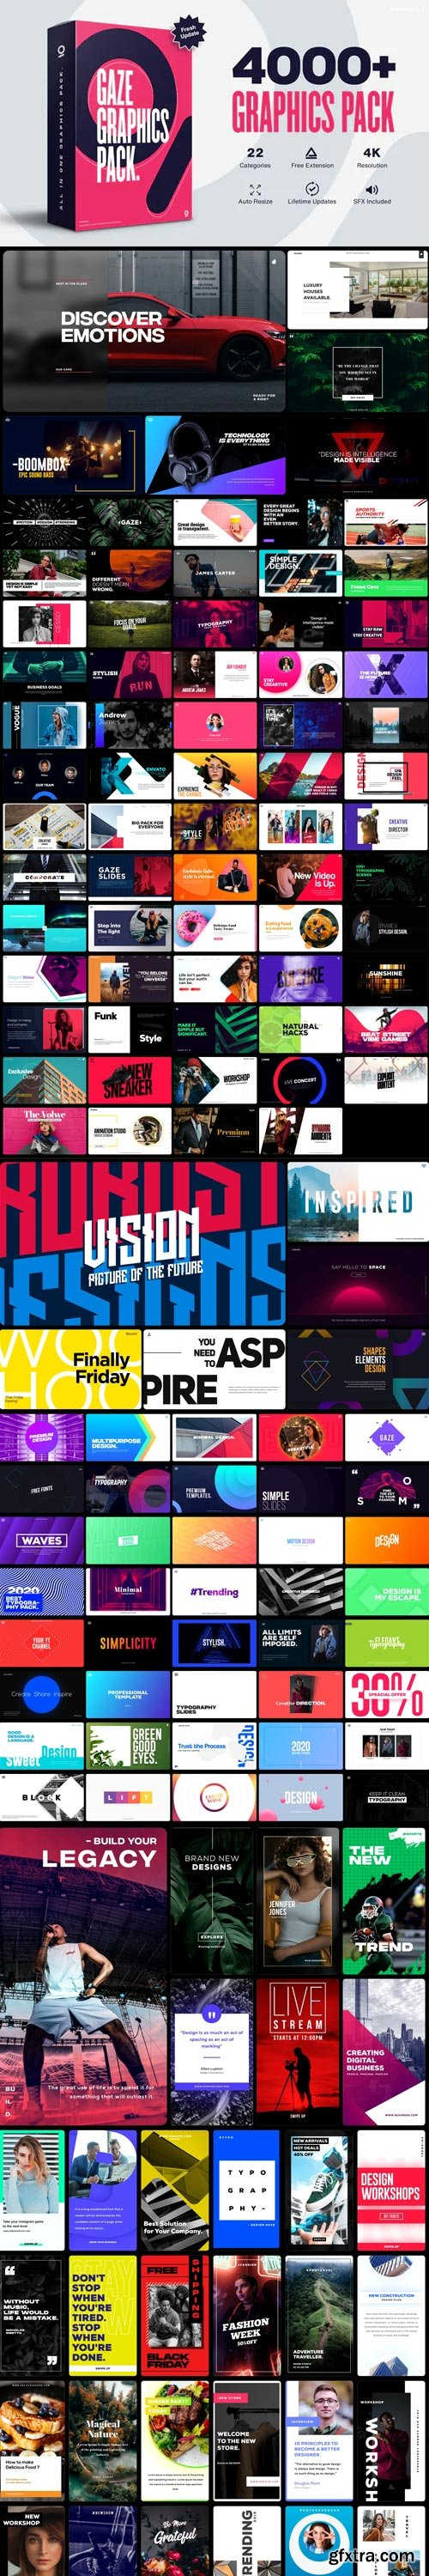 Videohive - Graphics Pack // 4000+ Animation Pack V4.5 - 25010010